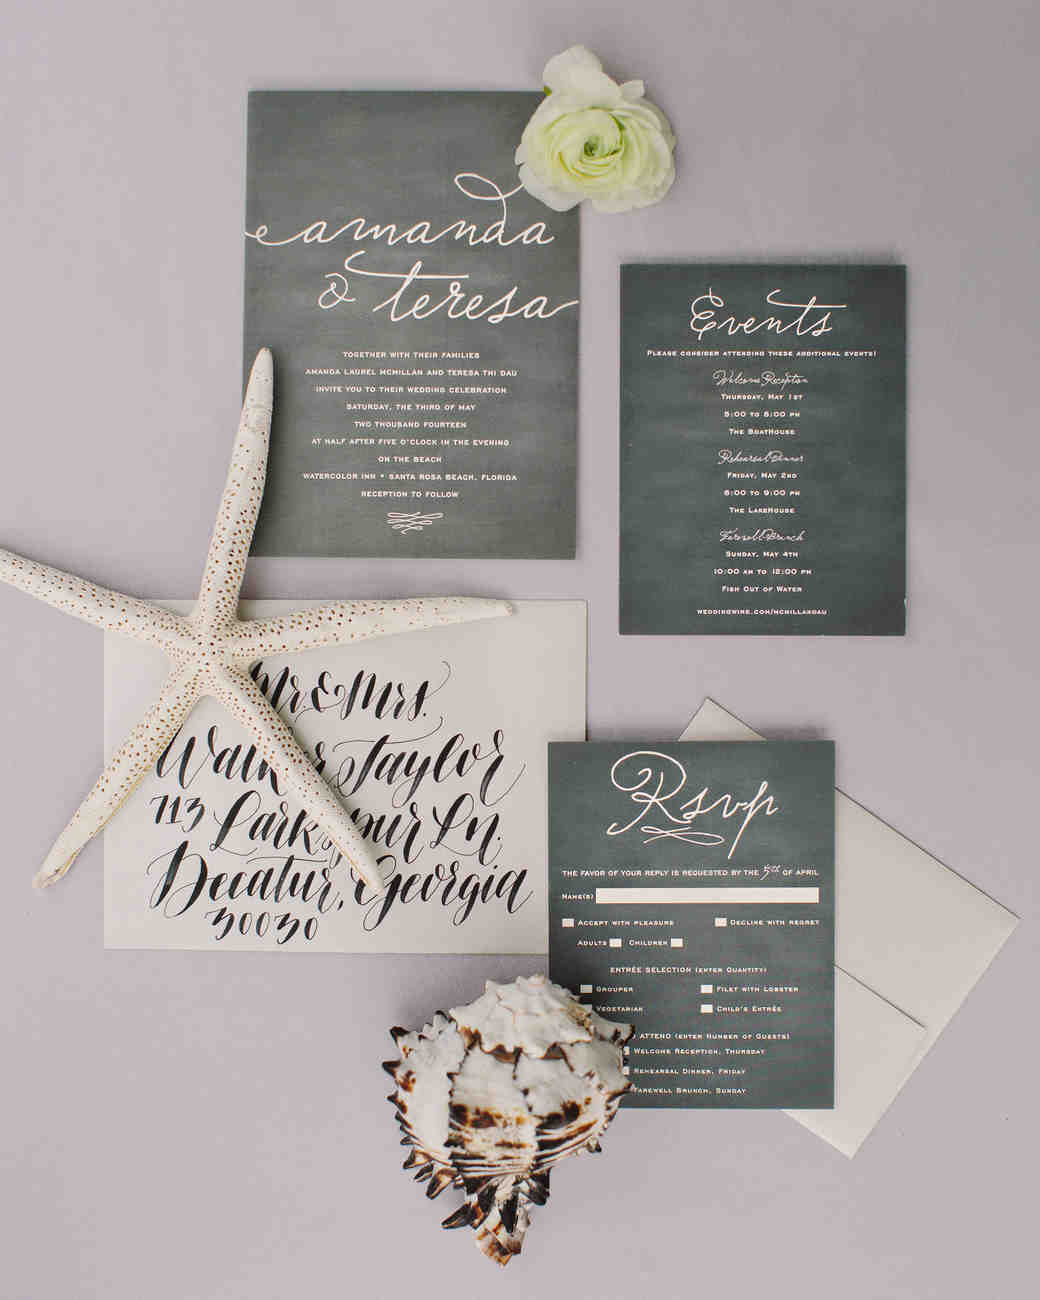 teresa-amanda-wedding-invite-7676-s111694-1114.jpg